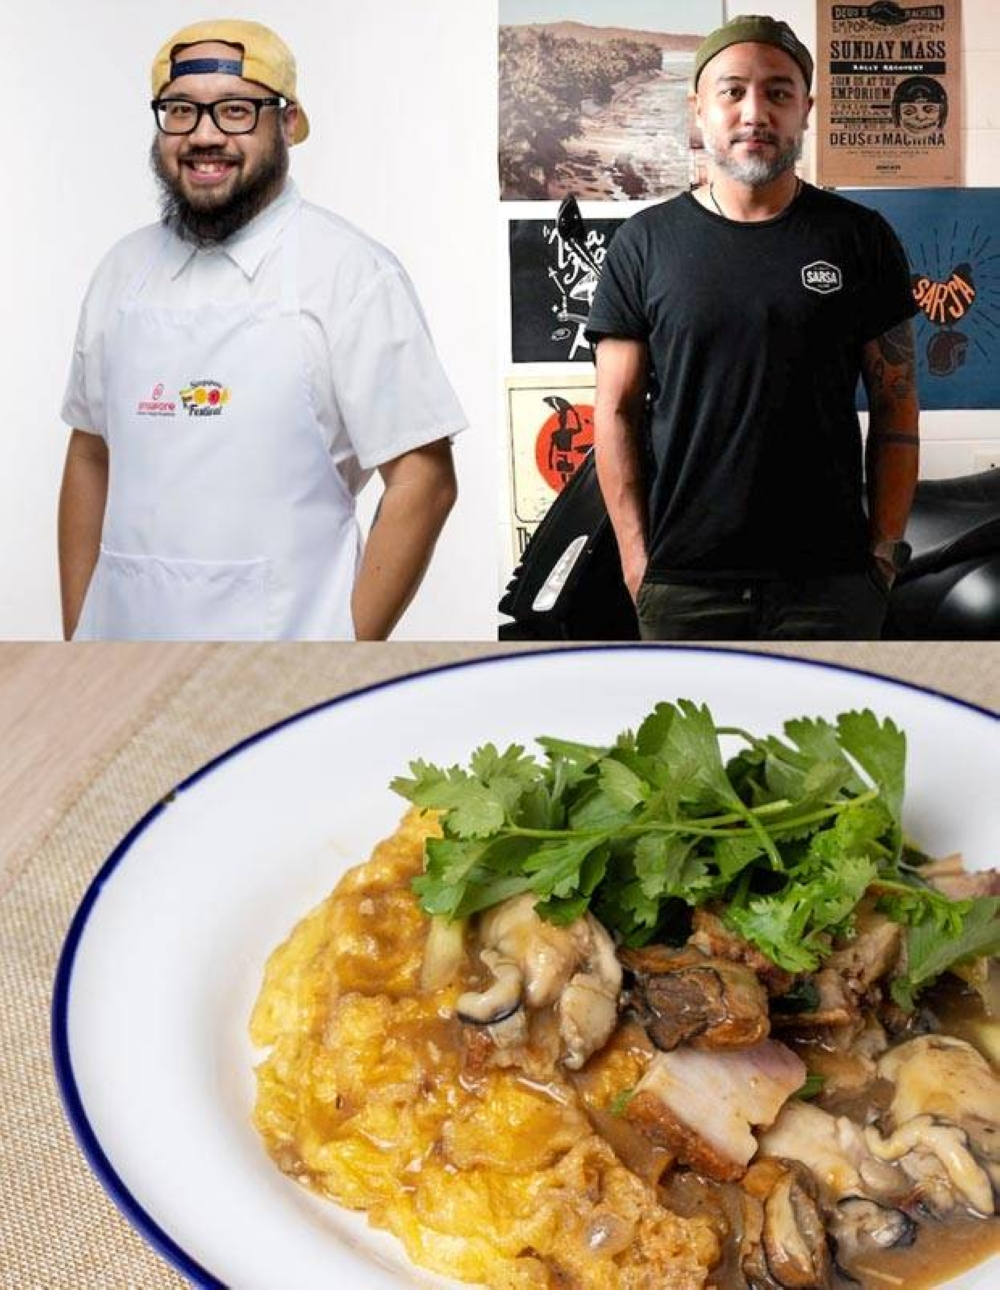 Chef JP Anglo and Bjorn Shen will have their own take on cooking Singapore's Oyster Omelette in a special virtual masterclass.